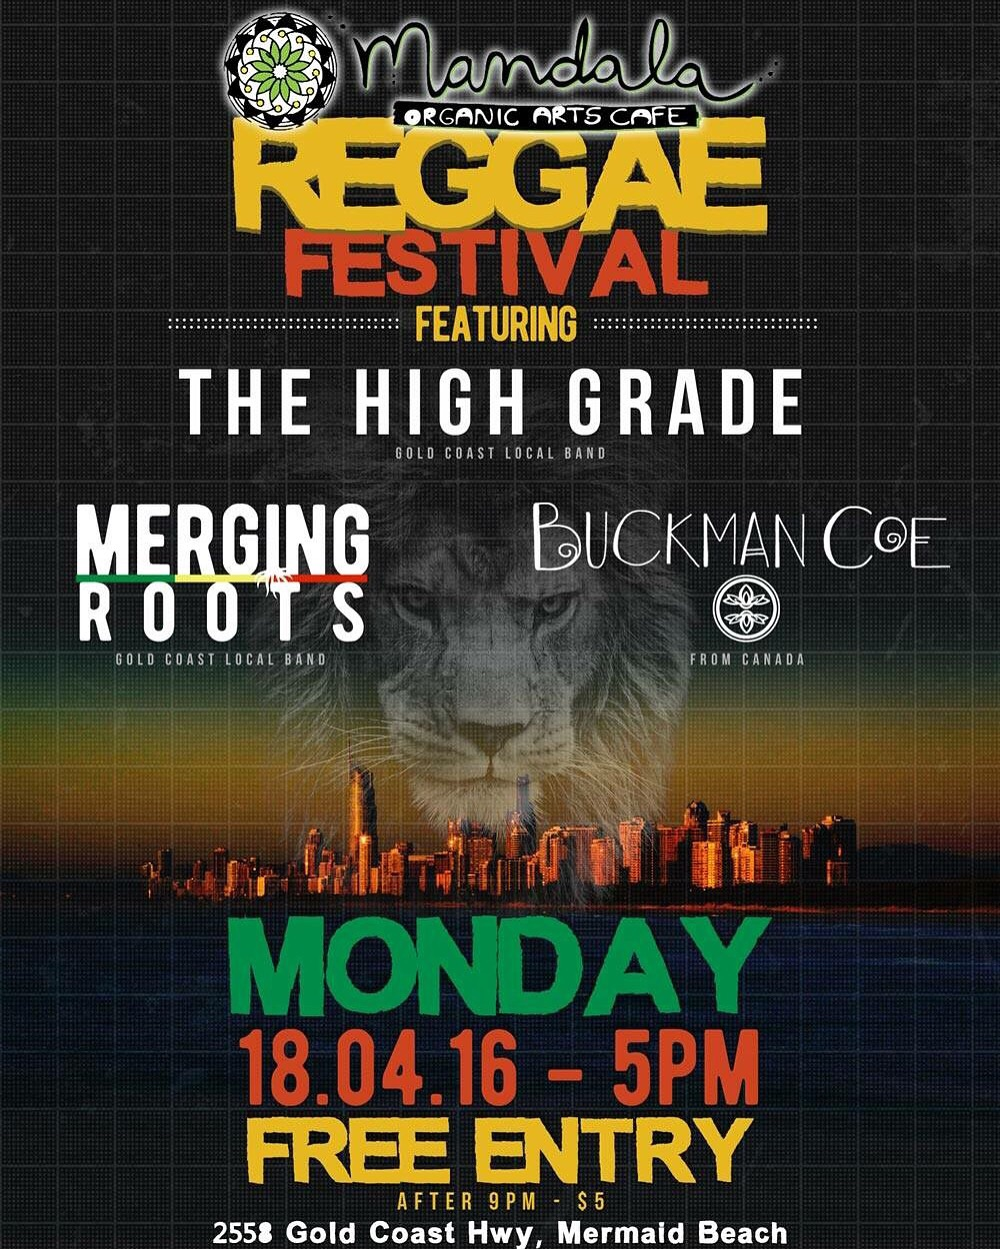 fbevent: http://bit.ly/April18ReggaeFest